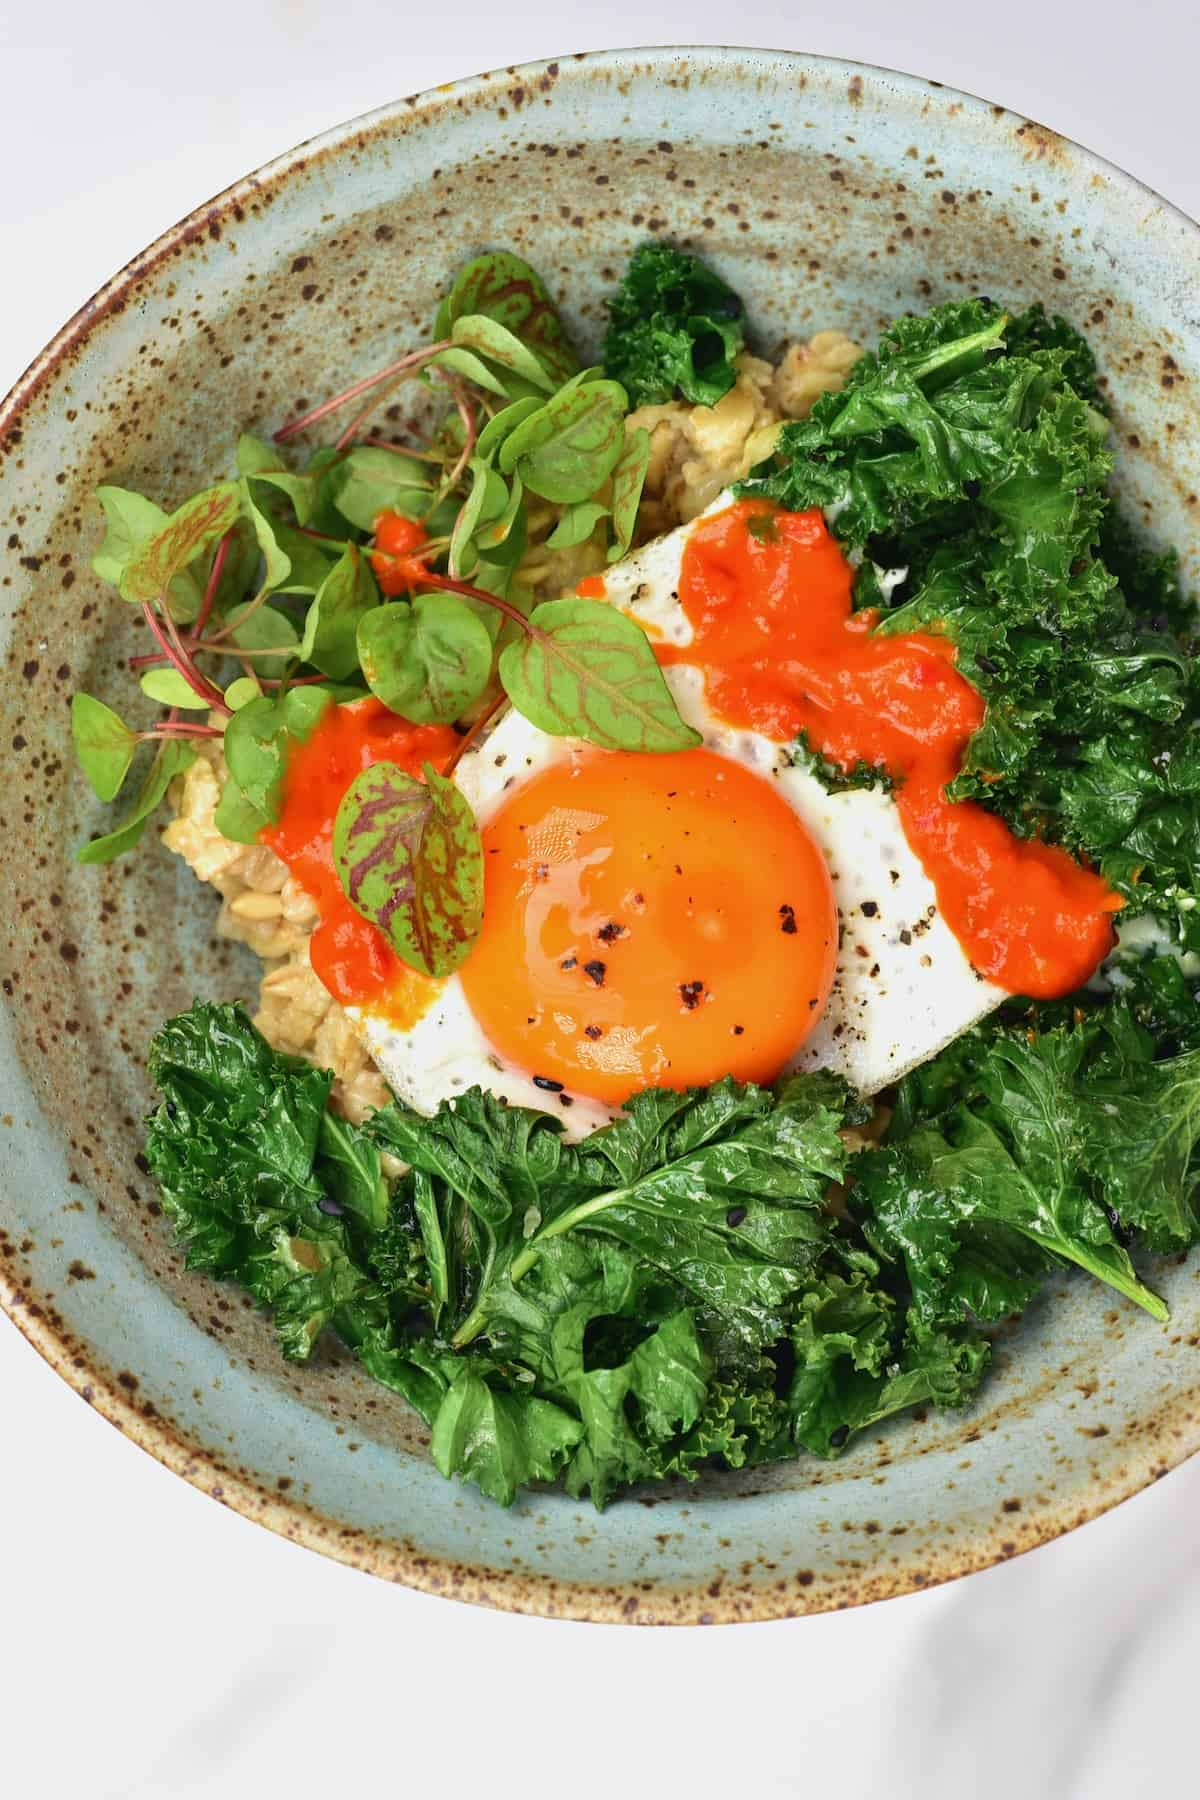 Oatmeal egg and kale in a bowl